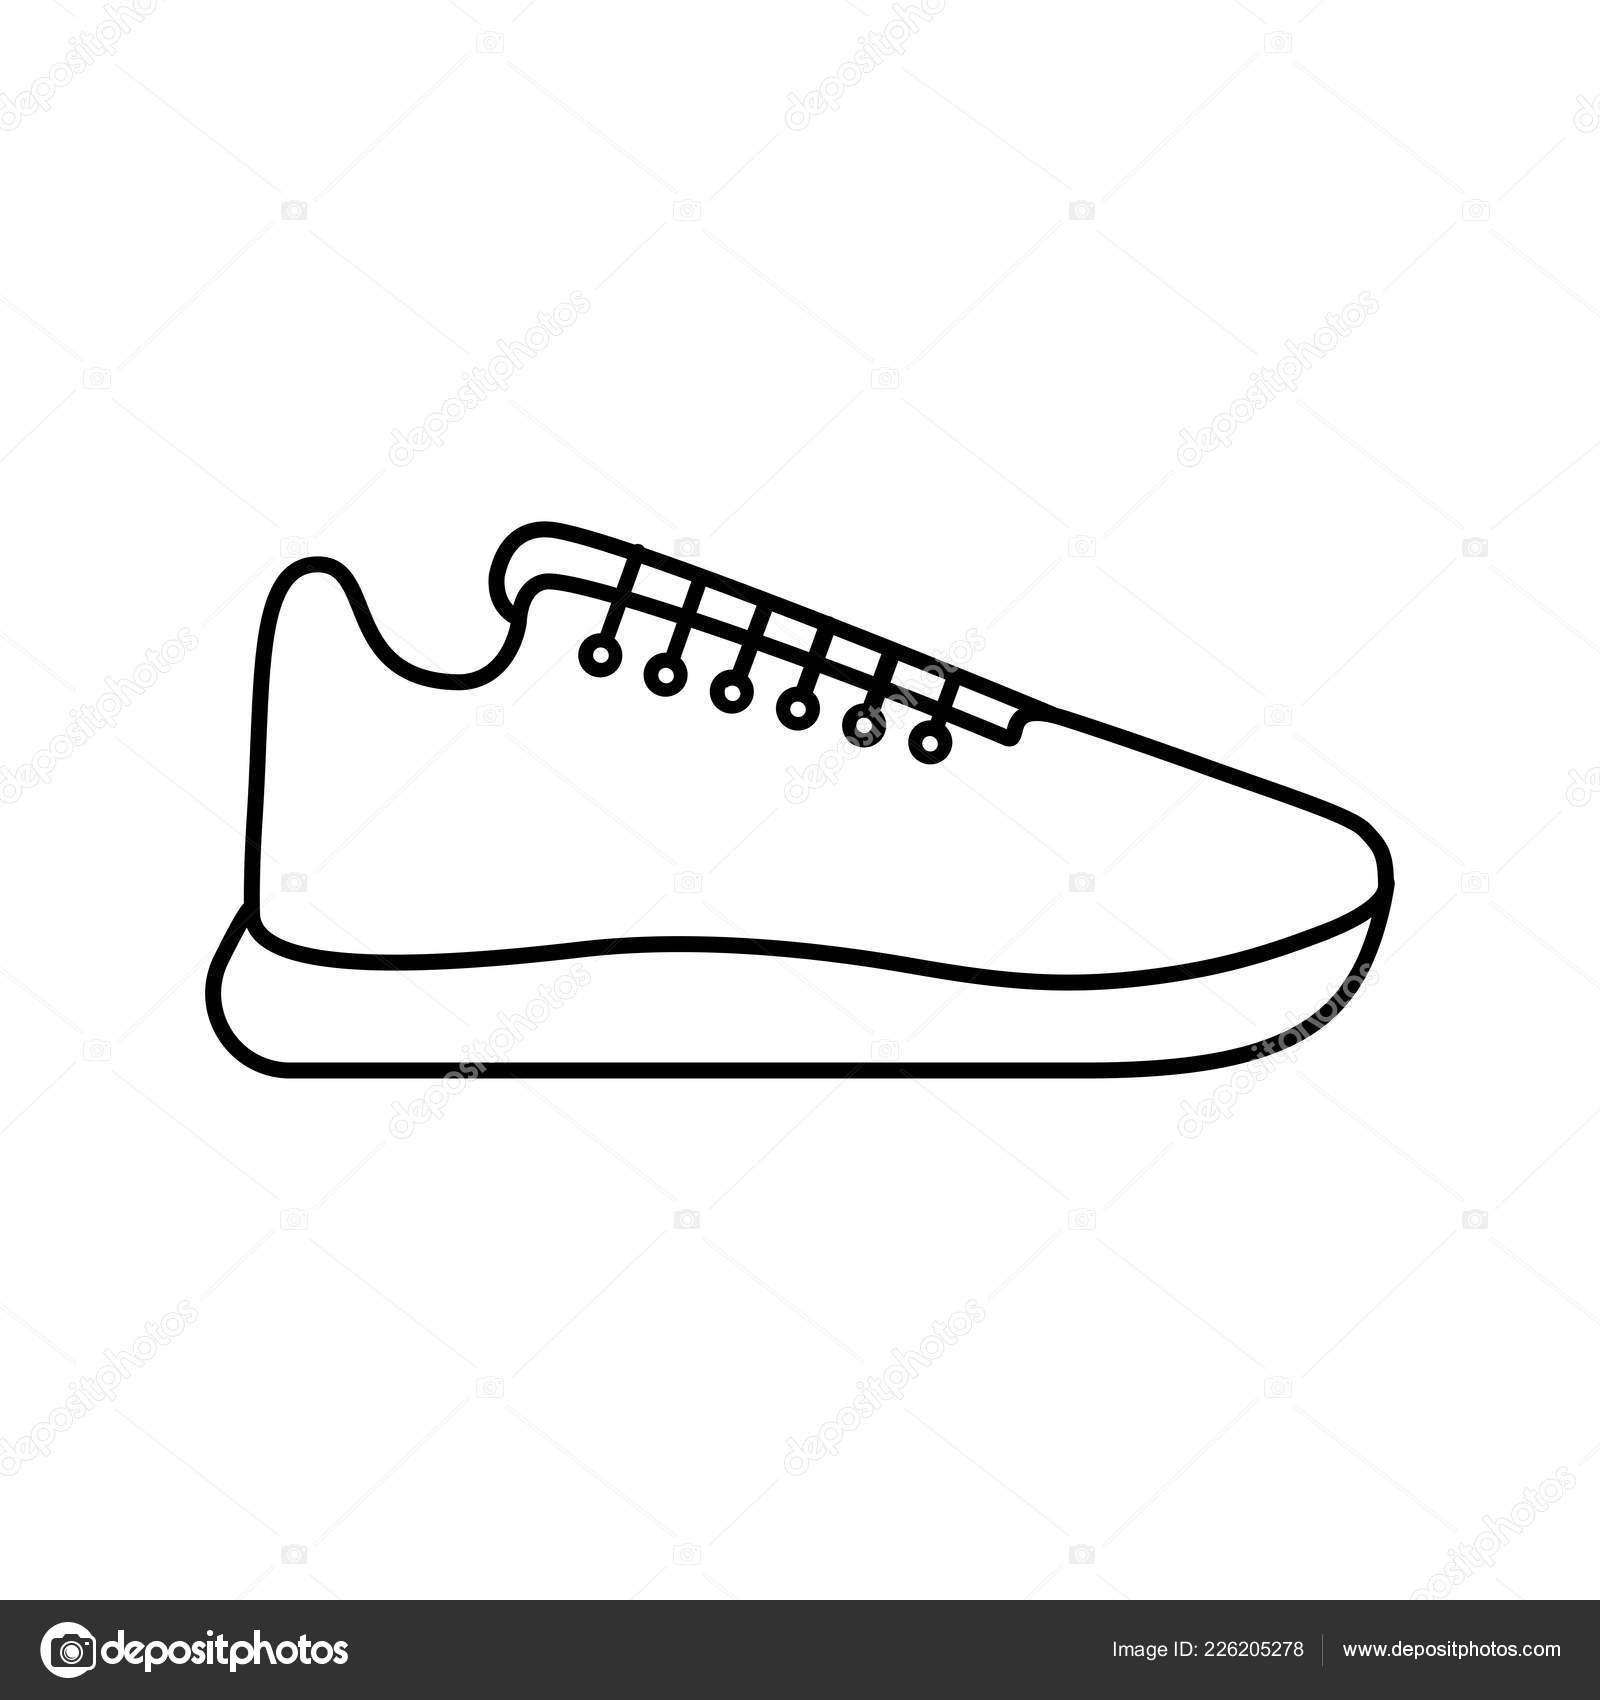 hight resolution of vector illustration icon of sport running shoes sneakers black outline white background vector by